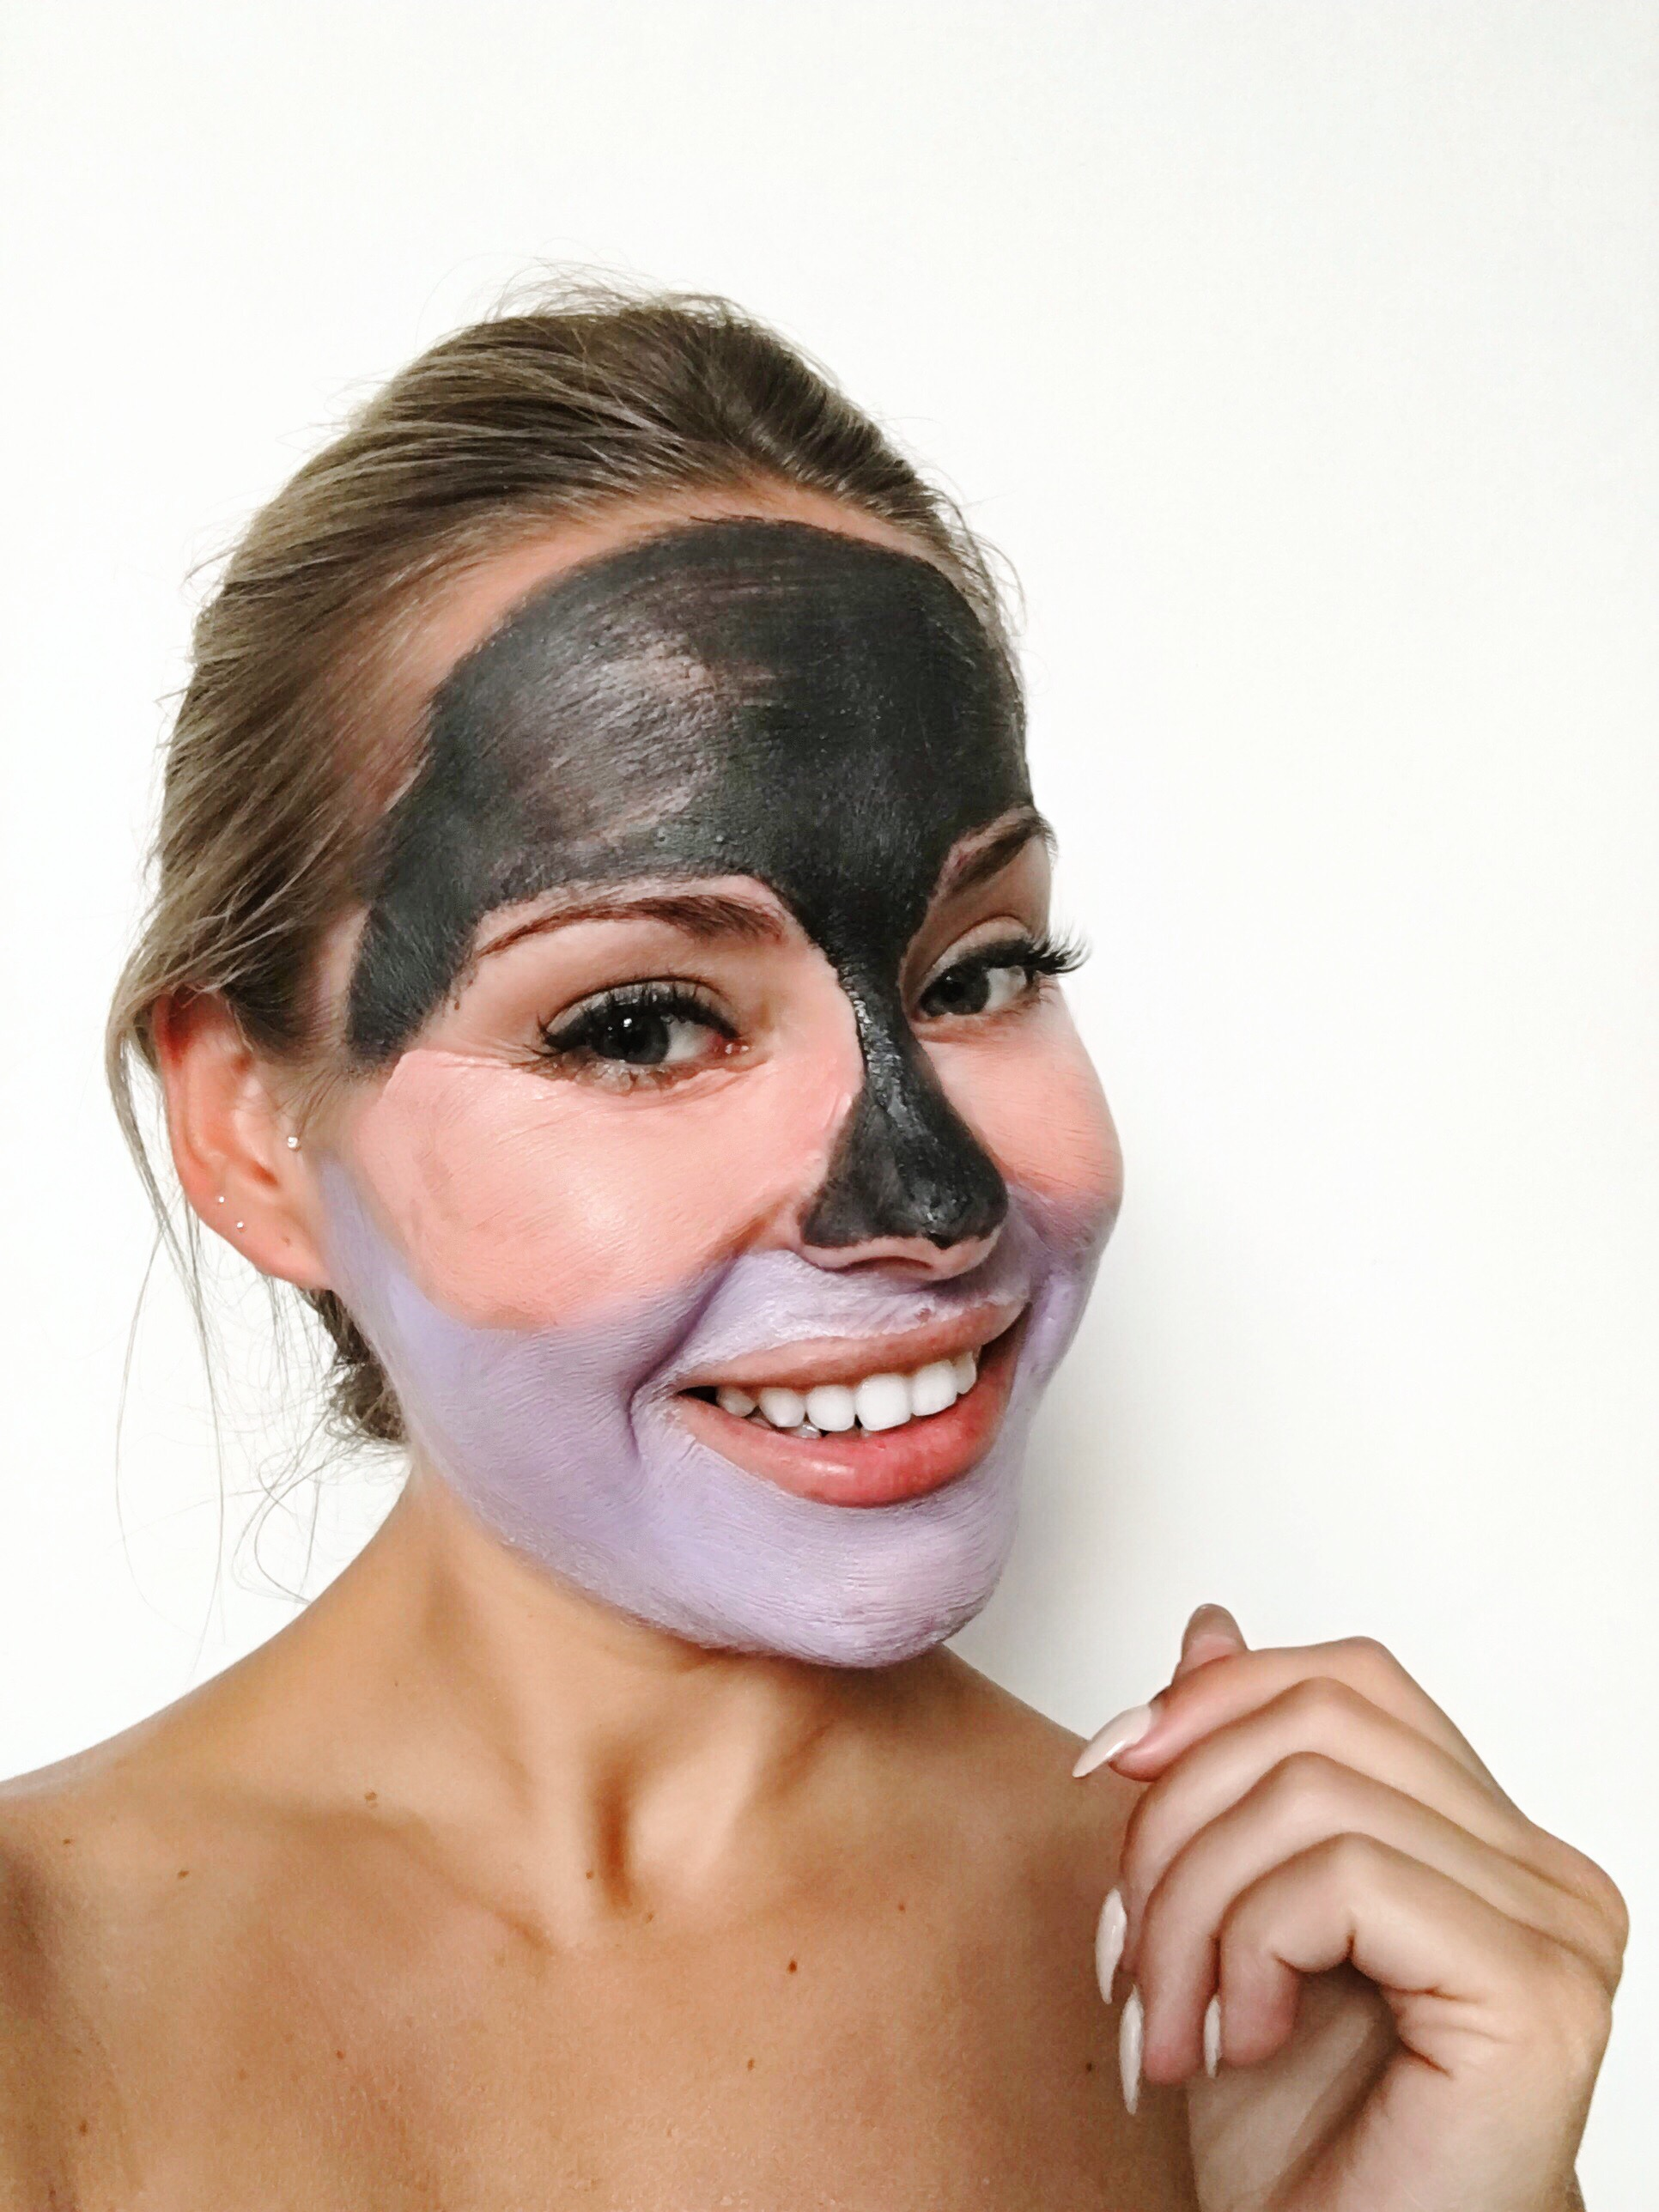 Step 3:DETOX ENERGIZING MASK– Detoxifies and Revitalizes - A purifying mask, of violet color, that immediately restores suffocated and environmentally damaged skin, providing it with an extra supply of energy.The White Clay and Pure Vital Clay that make up this mask are a complete duo to facilitate the oxygenation and protection of the skin, which together with the light texture and intense fragrance make, when applying the mask, the skin and the senses fill with energy.Indicated forPurifying and deeply oxygenating all skin types.Relaxing and soothing the features.Achieving an anti-fatigue effect.FormulaWhite Clay, its absorbing capacity makes it the perfect ally to eliminate impurities.Pure Vital Clay, improves superficial microcirculation and the supply of oxygen to skin cells.Defense Detox Complex, its properties helps the skin protection and detoxification. Blocks the formation of free radicals and neutralizes those already formed, allowing to fight against skin intoxication produced by environmental stress.